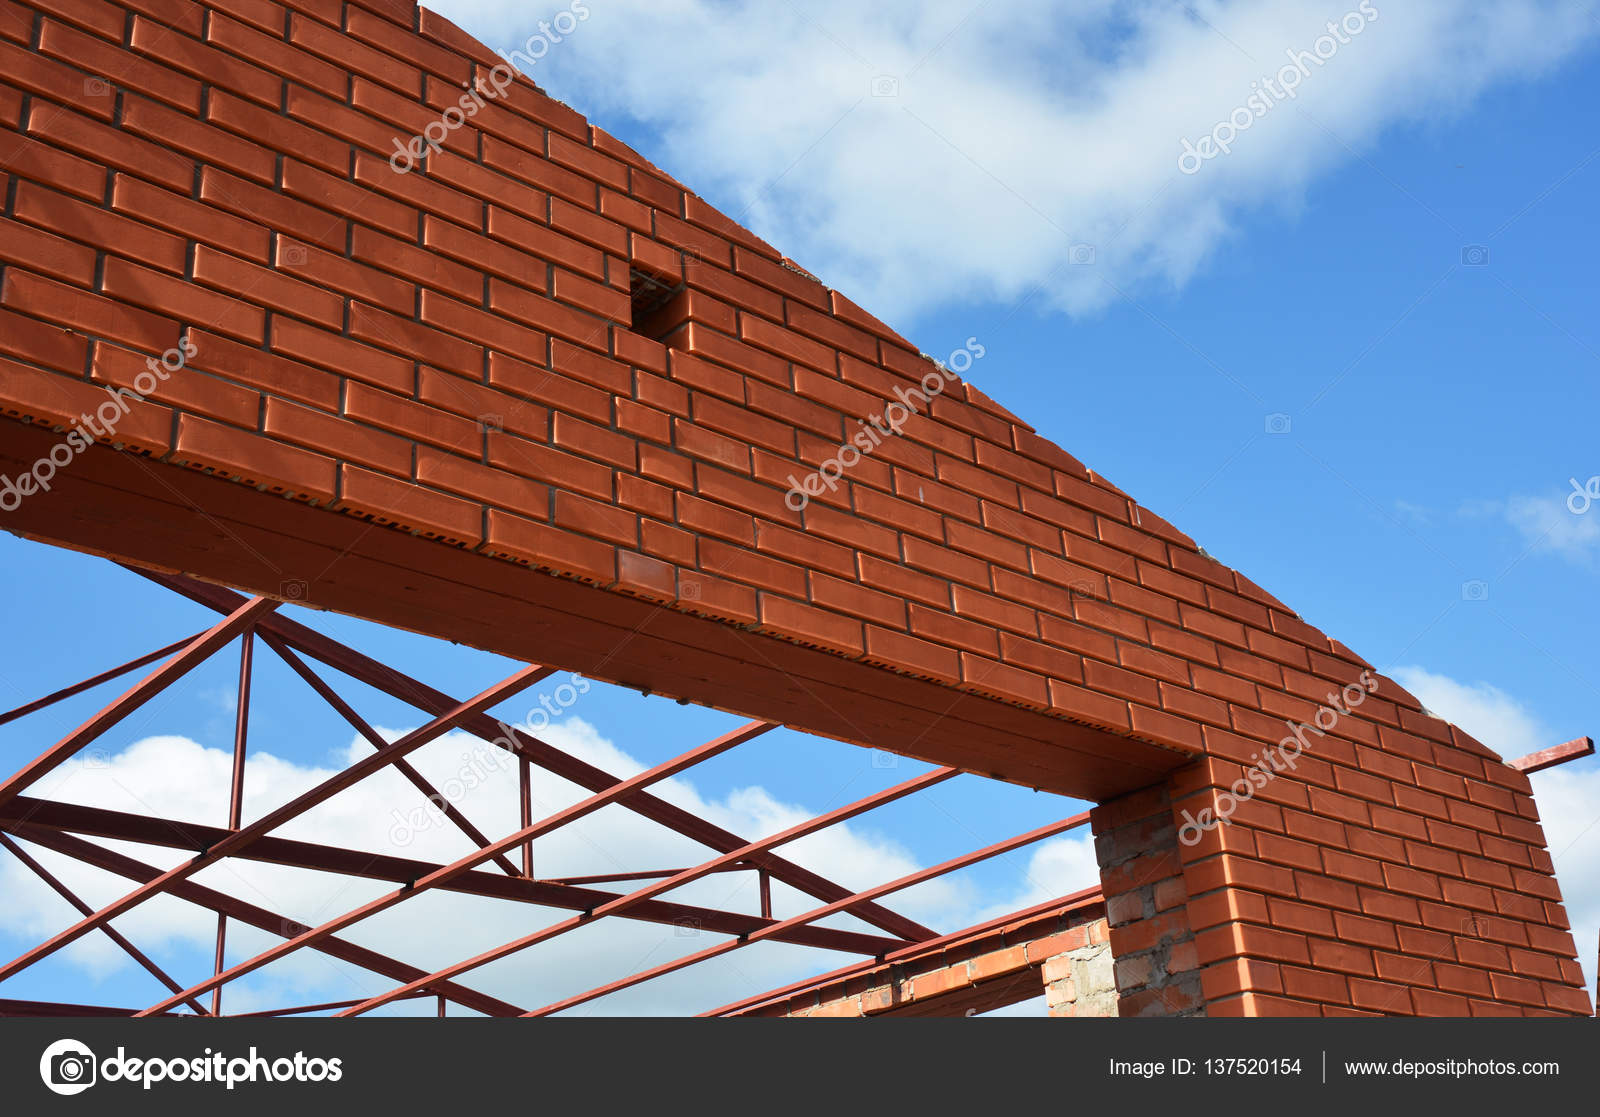 Steel roof trusses details with clouds sky background for Buy roof trusses